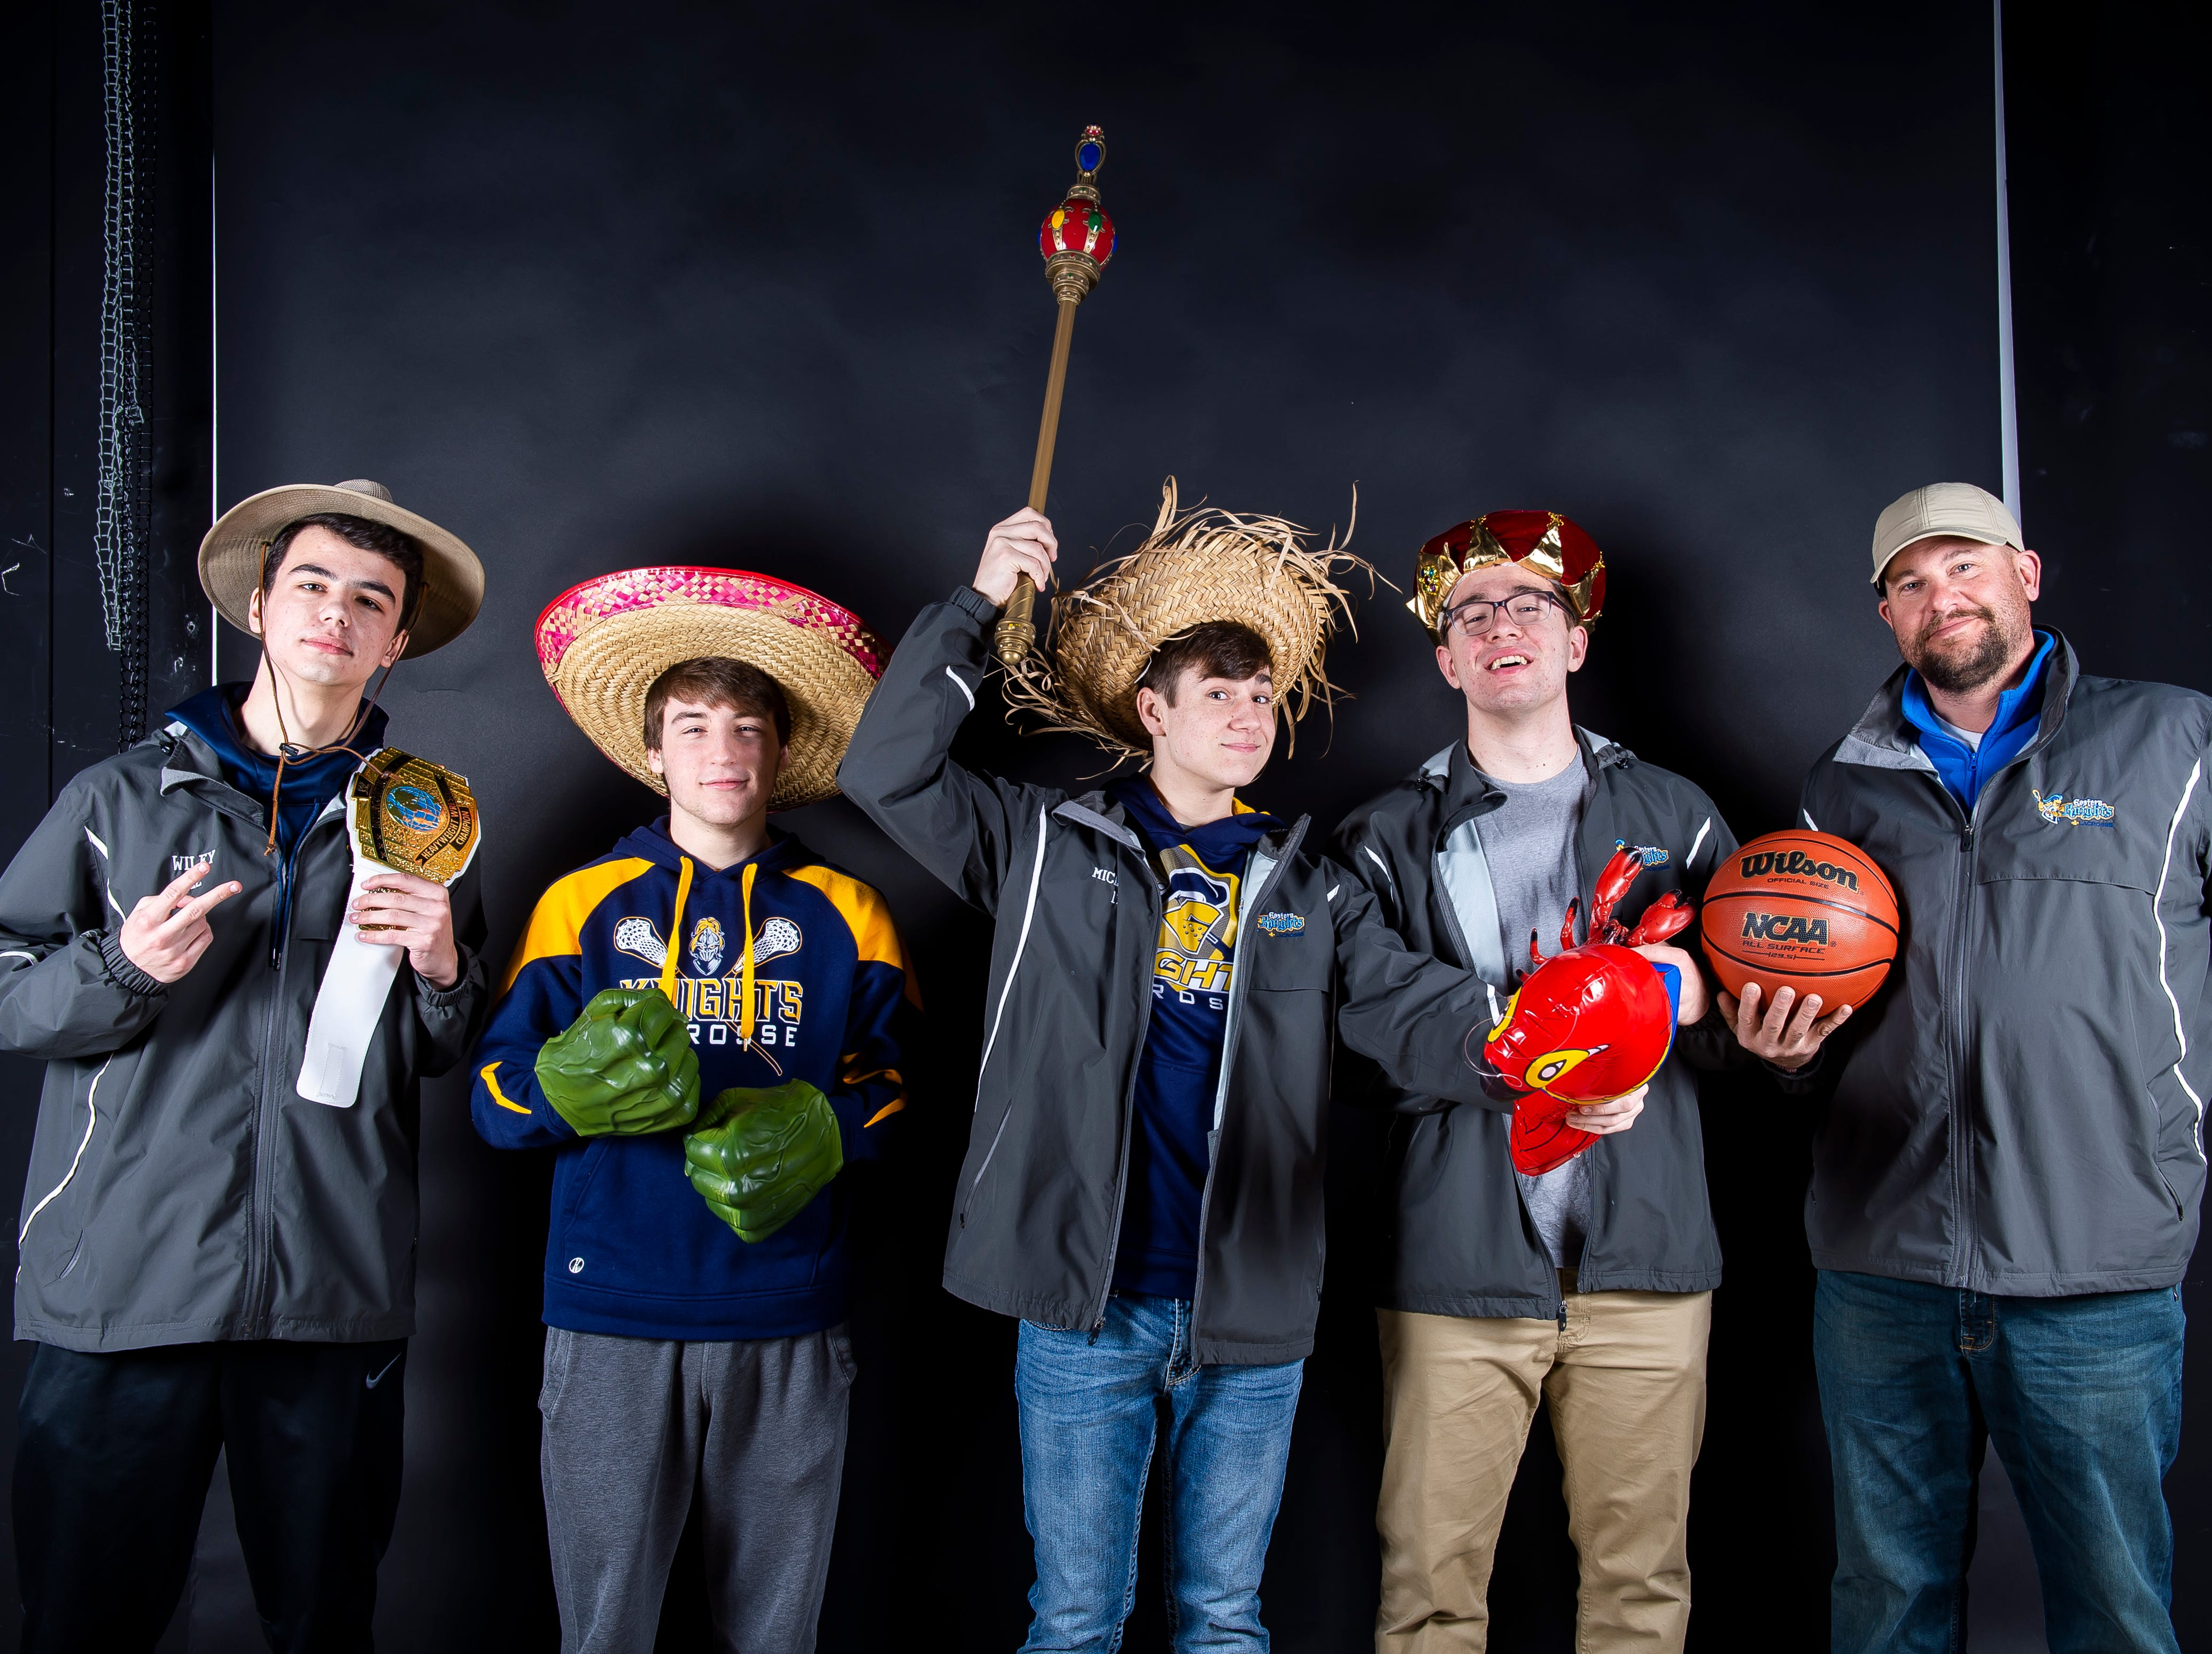 (From left) Eastern York lacrosse players Kade Wiley, Jake Crumling, Cadeyn Micahel and Zach Grove pose with coach Aaron Bankowski in the GameTimePA photo booth during spring sports media day in York Sunday, March 10, 2019.